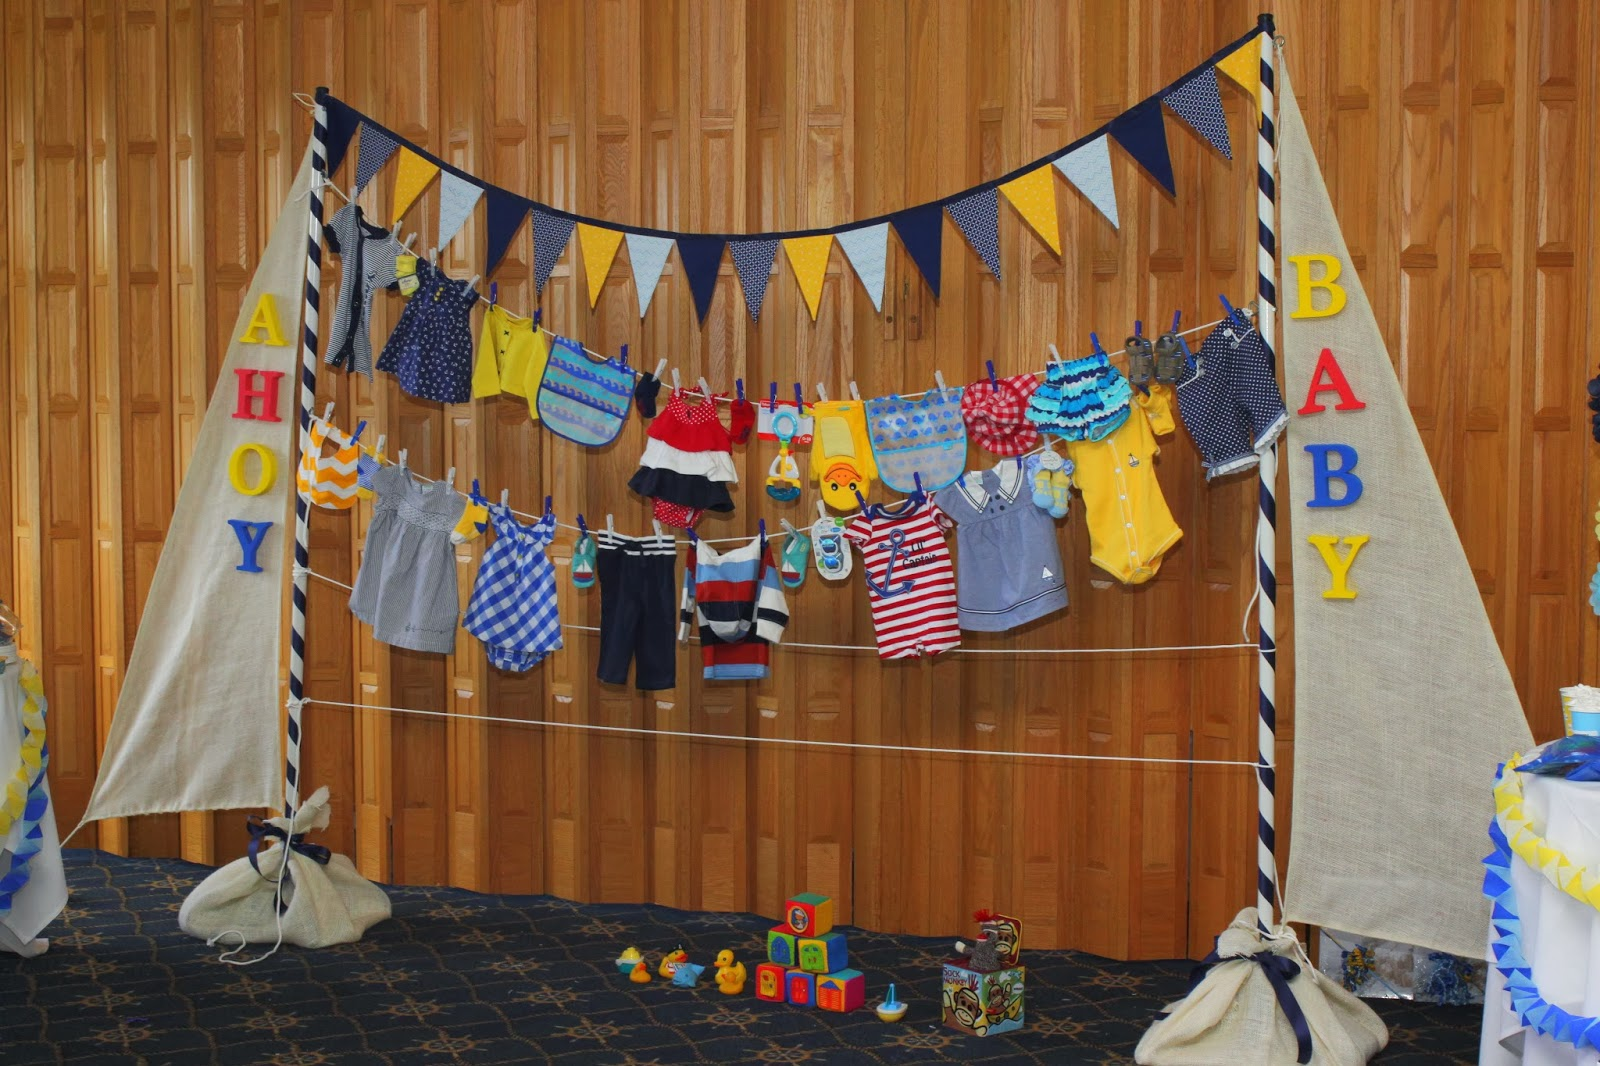 doo dah nautical baby shower